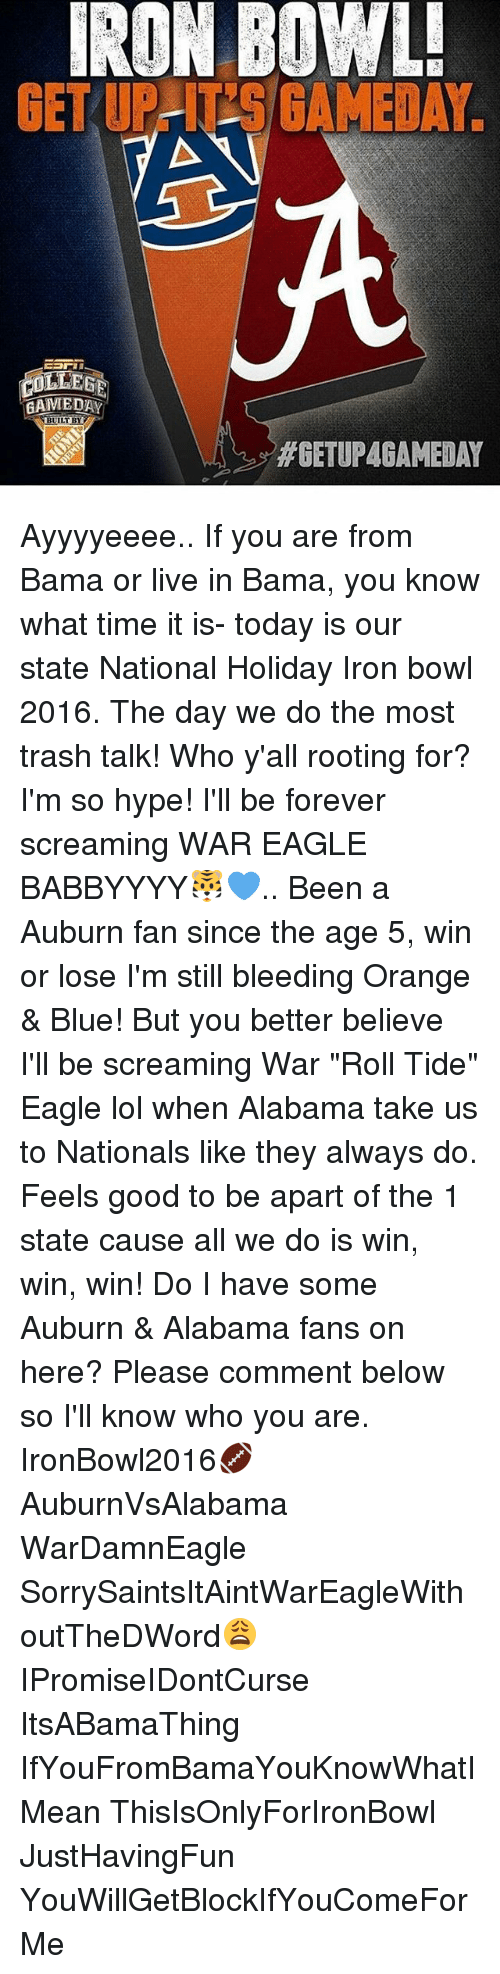 """iron bowl: IRON BOWL!  GET LILLE  AAMMEDAY  LT  MGETUPACAMEDAY Ayyyyeeee.. If you are from Bama or live in Bama, you know what time it is- today is our state National Holiday Iron bowl 2016. The day we do the most trash talk! Who y'all rooting for? I'm so hype! I'll be forever screaming WAR EAGLE BABBYYYY🐯💙.. Been a Auburn fan since the age 5, win or lose I'm still bleeding Orange & Blue! But you better believe I'll be screaming War """"Roll Tide"""" Eagle lol when Alabama take us to Nationals like they always do. Feels good to be apart of the 1 state cause all we do is win, win, win! Do I have some Auburn & Alabama fans on here? Please comment below so I'll know who you are. IronBowl2016🏈 AuburnVsAlabama WarDamnEagle SorrySaintsItAintWarEagleWithoutTheDWord😩 IPromiseIDontCurse ItsABamaThing IfYouFromBamaYouKnowWhatIMean ThisIsOnlyForIronBowl JustHavingFun YouWillGetBlockIfYouComeForMe"""